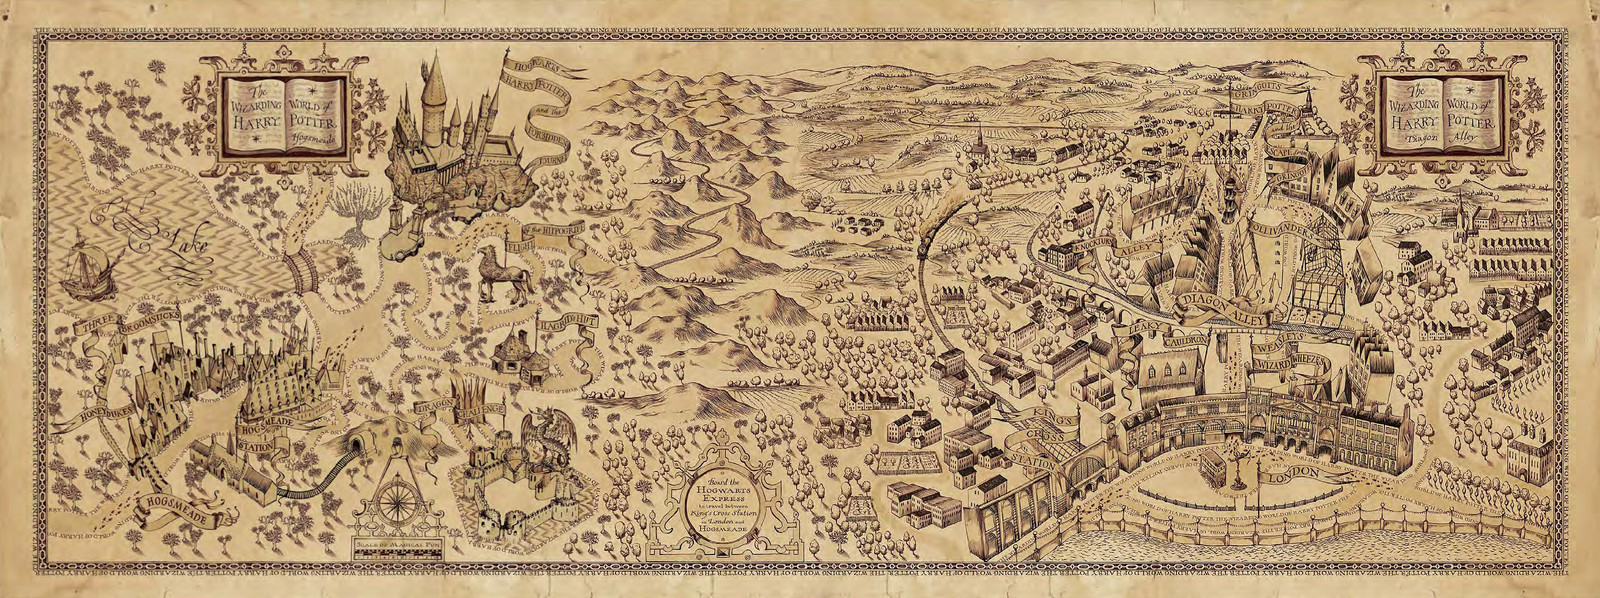 diagon-alley-map Diagon Alley Map on iowa county map, j.k. rowling map, ministry of magic map, wizard map, harry potter alley map, charing cross galloway street map, oklahoma tornado alley map, chamber of secrets map, hogwarts map, home map,